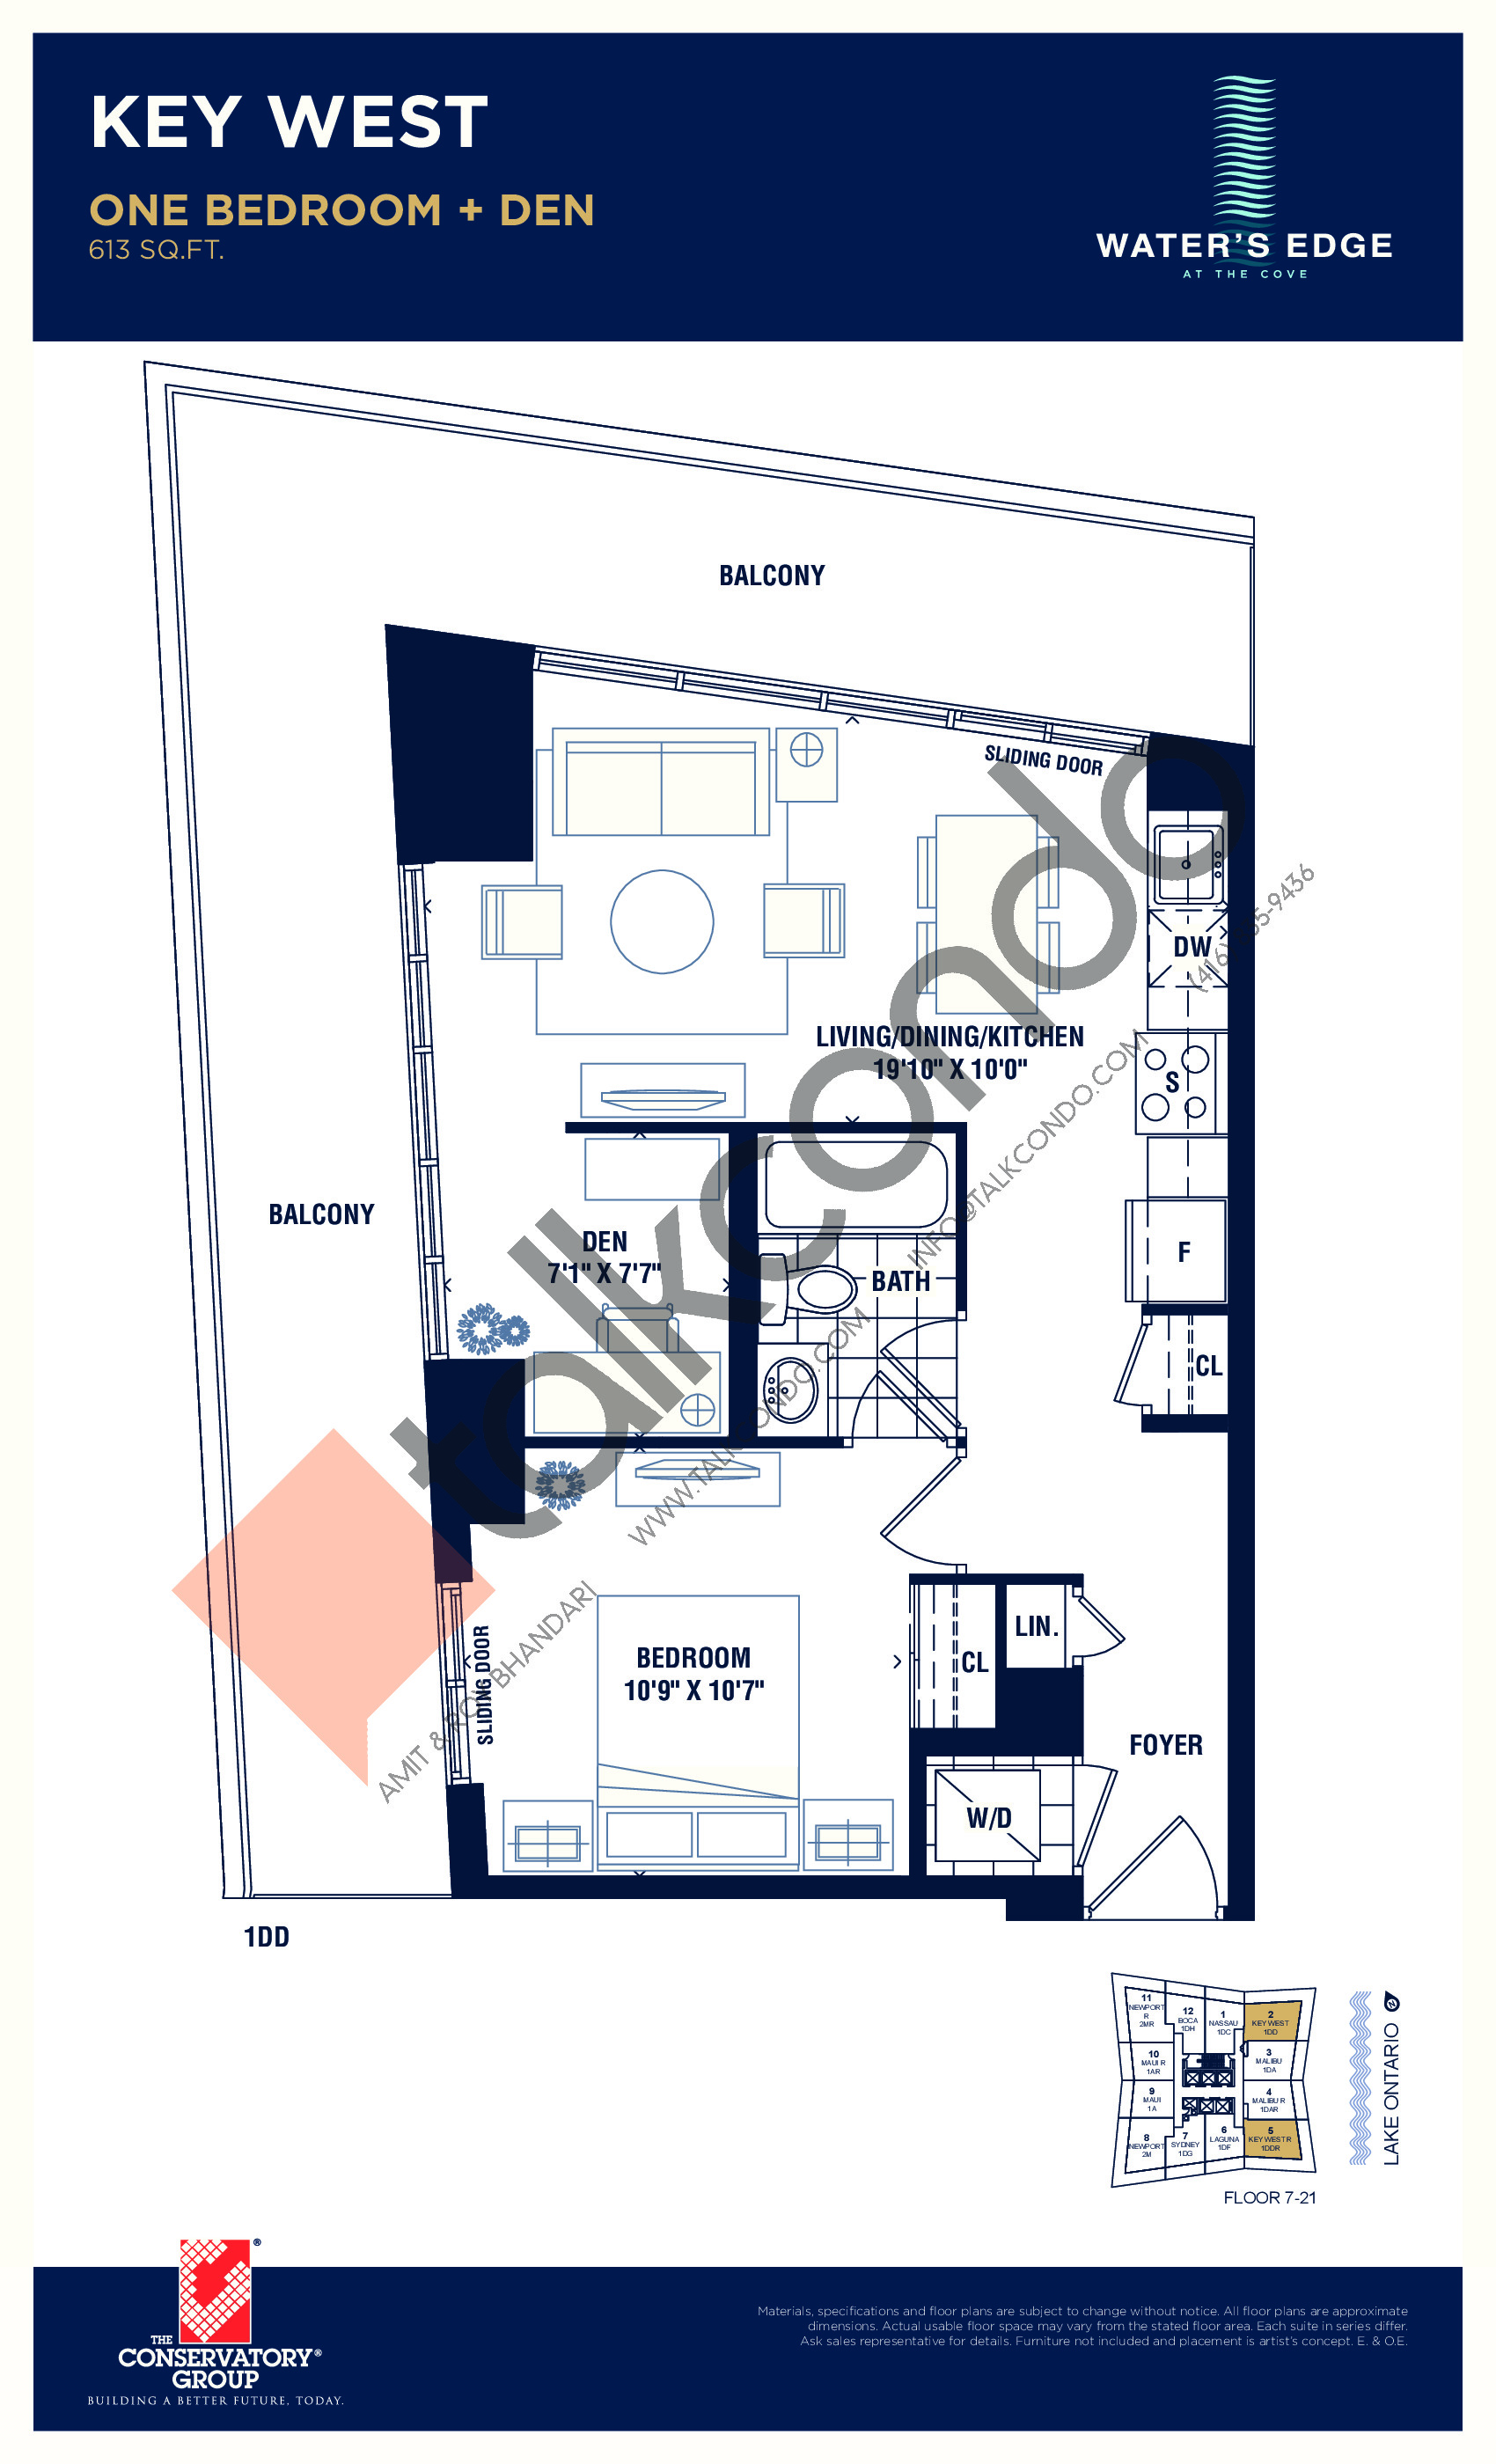 Key West Floor Plan at Water's Edge at the Cove Condos - 613 sq.ft